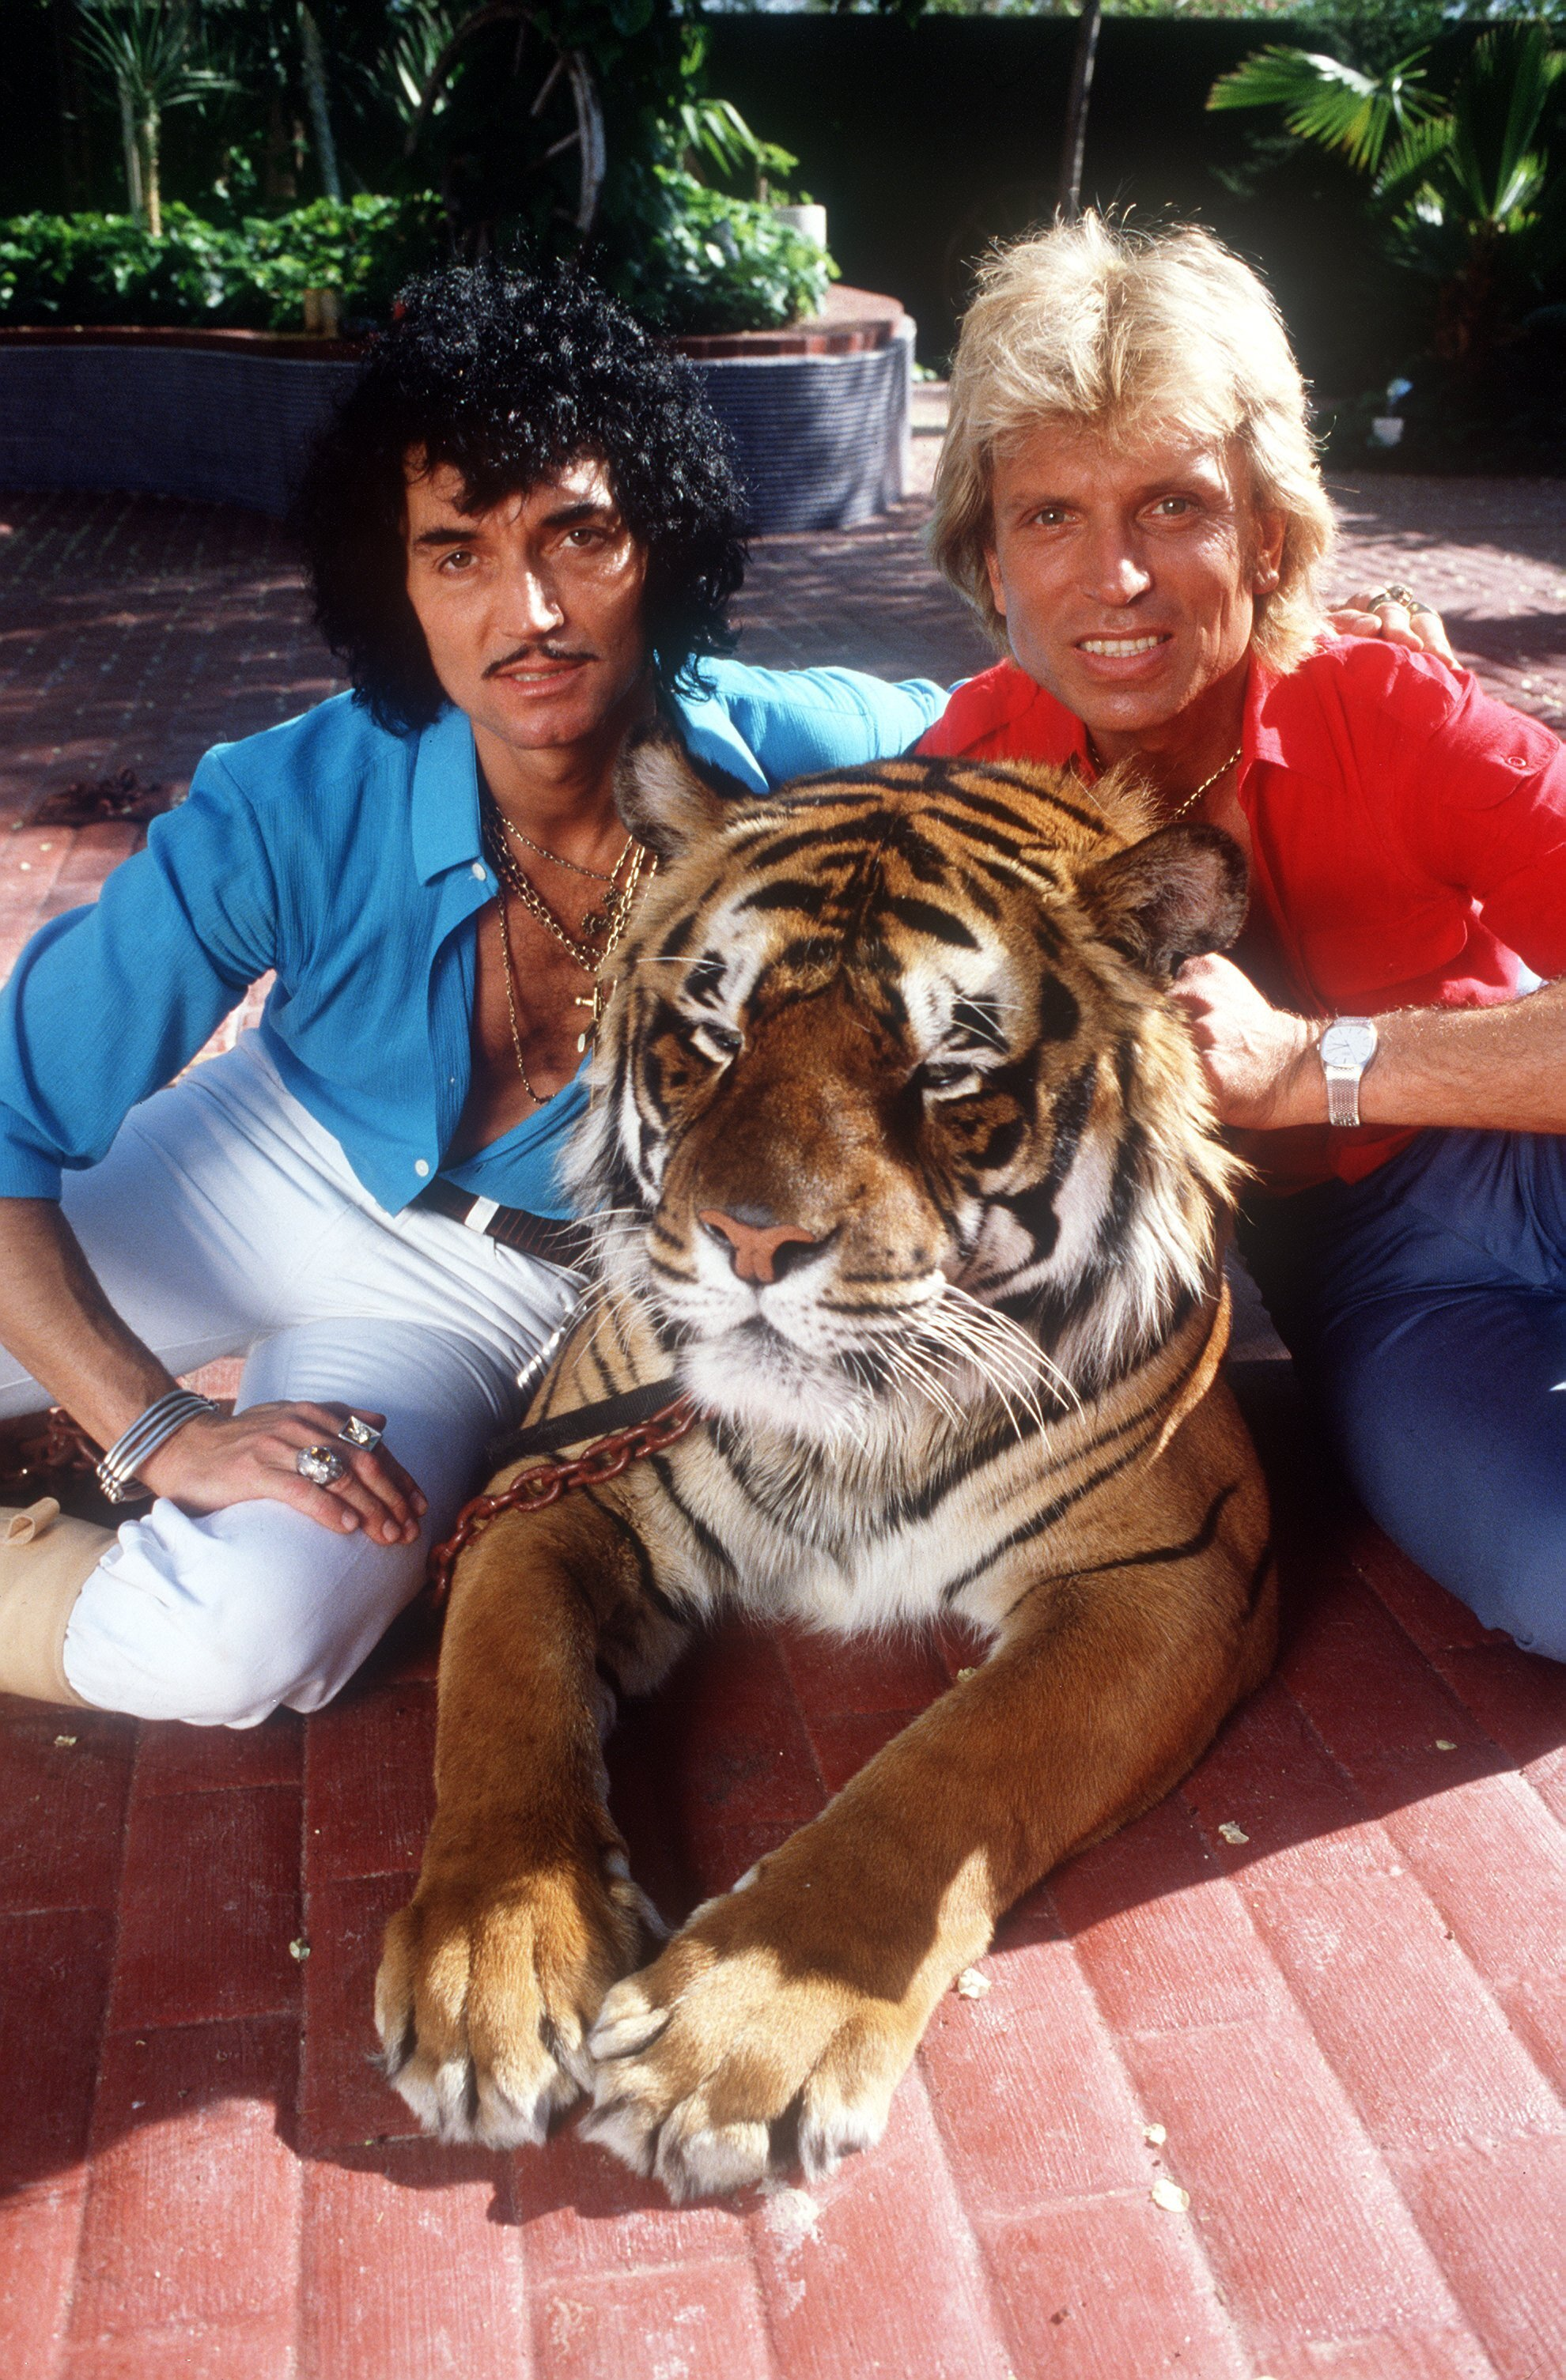 Photos of Siegfried and Roy's Style Through the Years